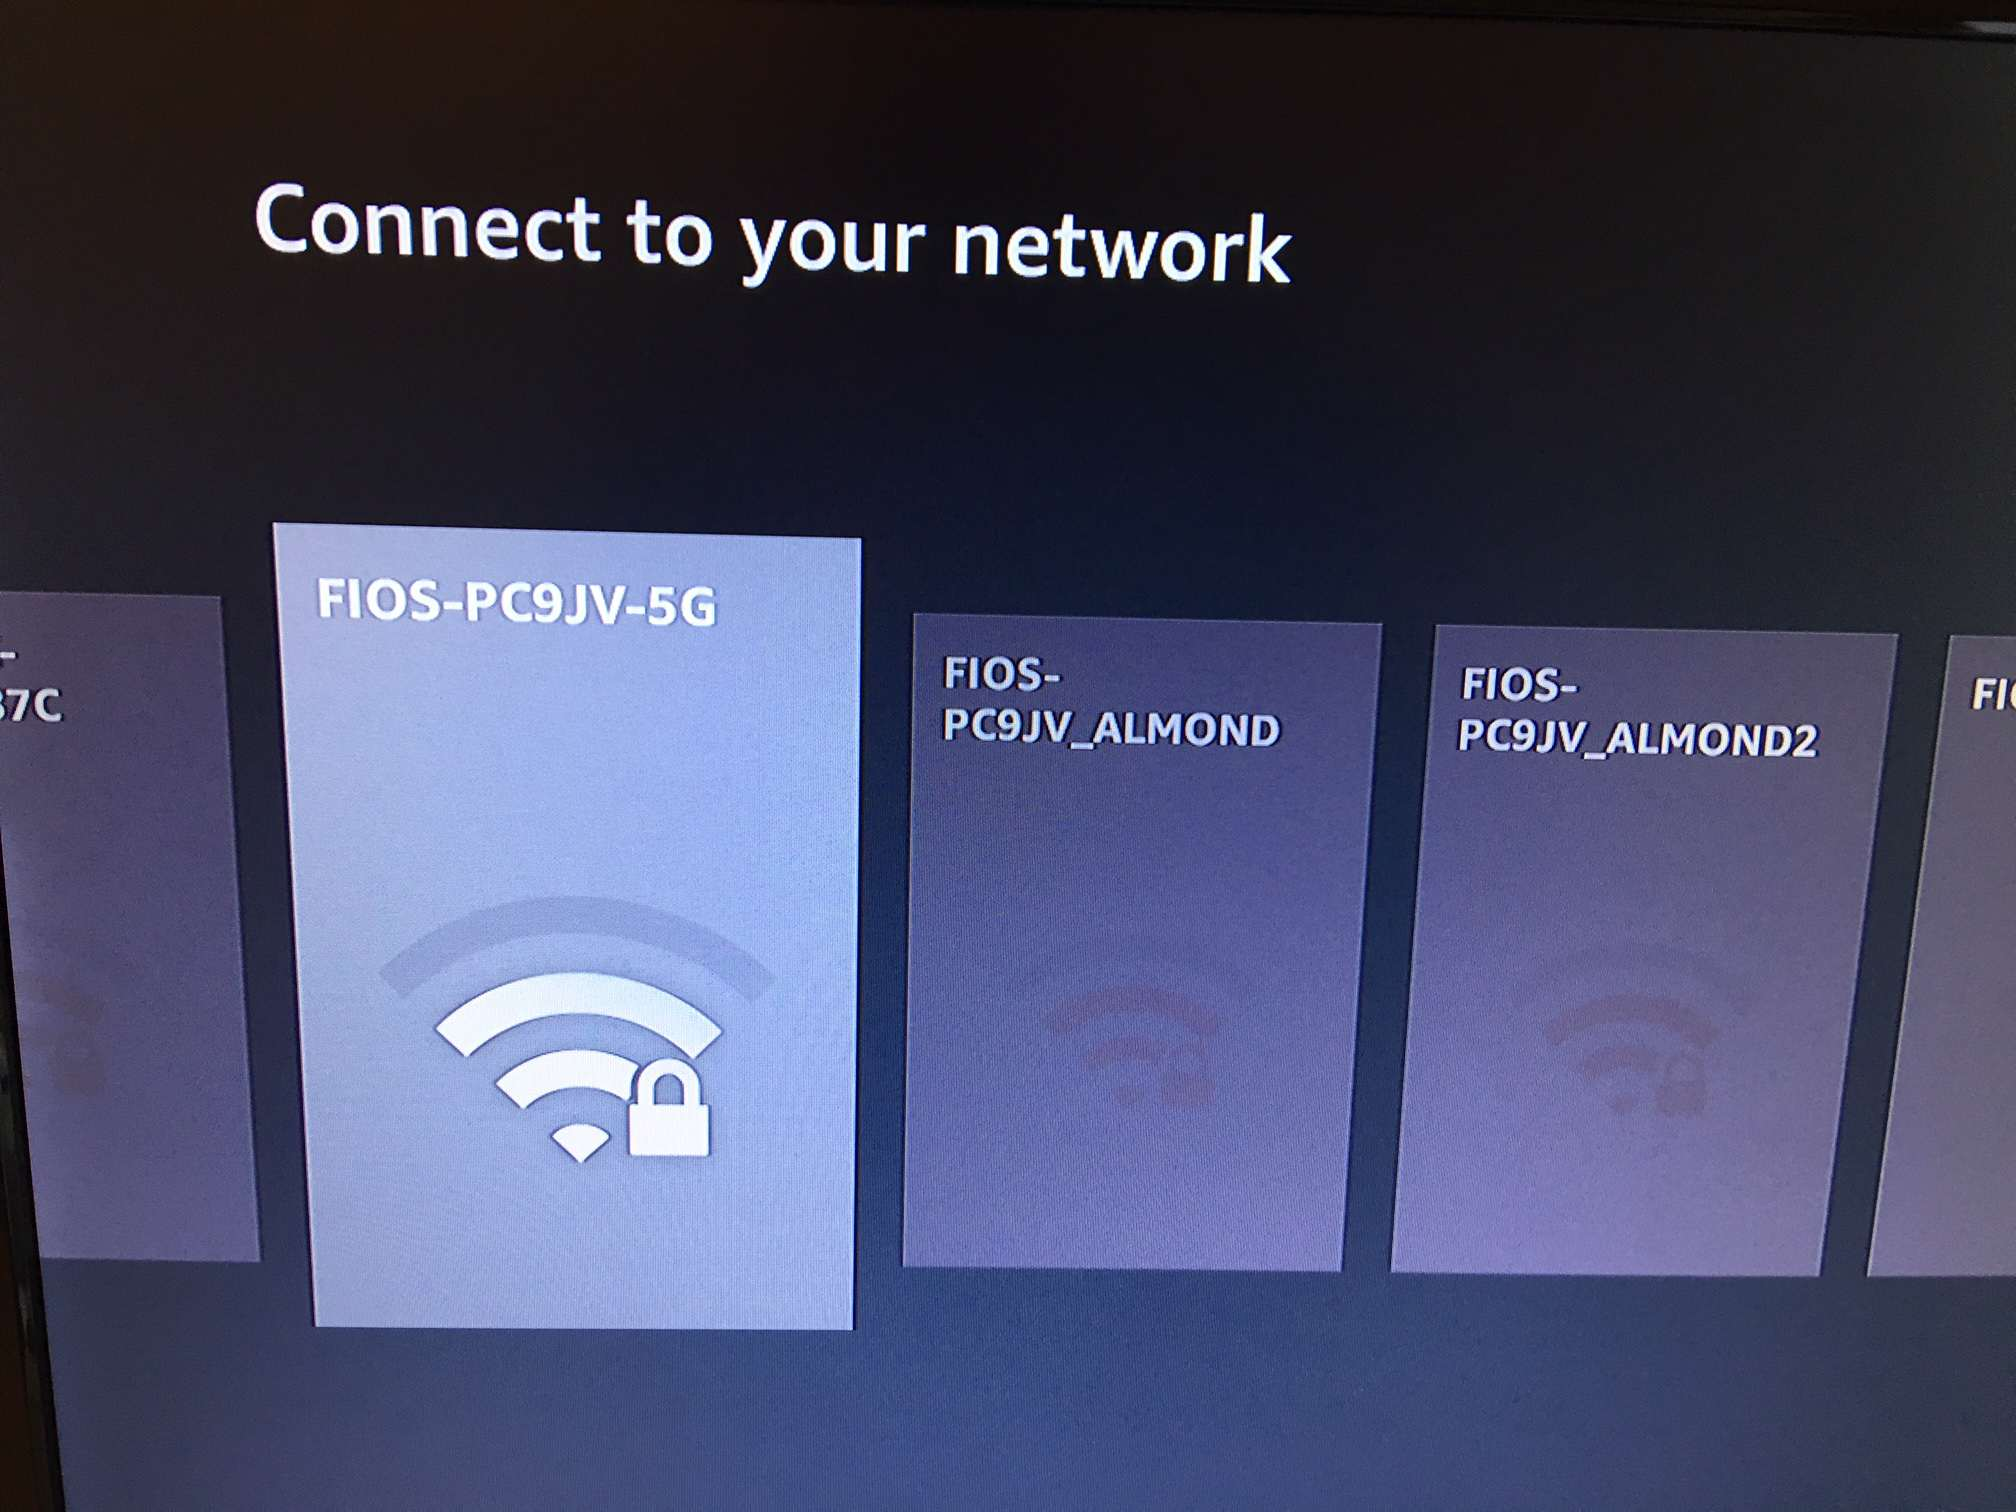 How To Set Up And Use Amazon Fire Tv Directv Wireless Wiring Diagram A Picture Of Screen With Amazons Showing The Connect Your Network